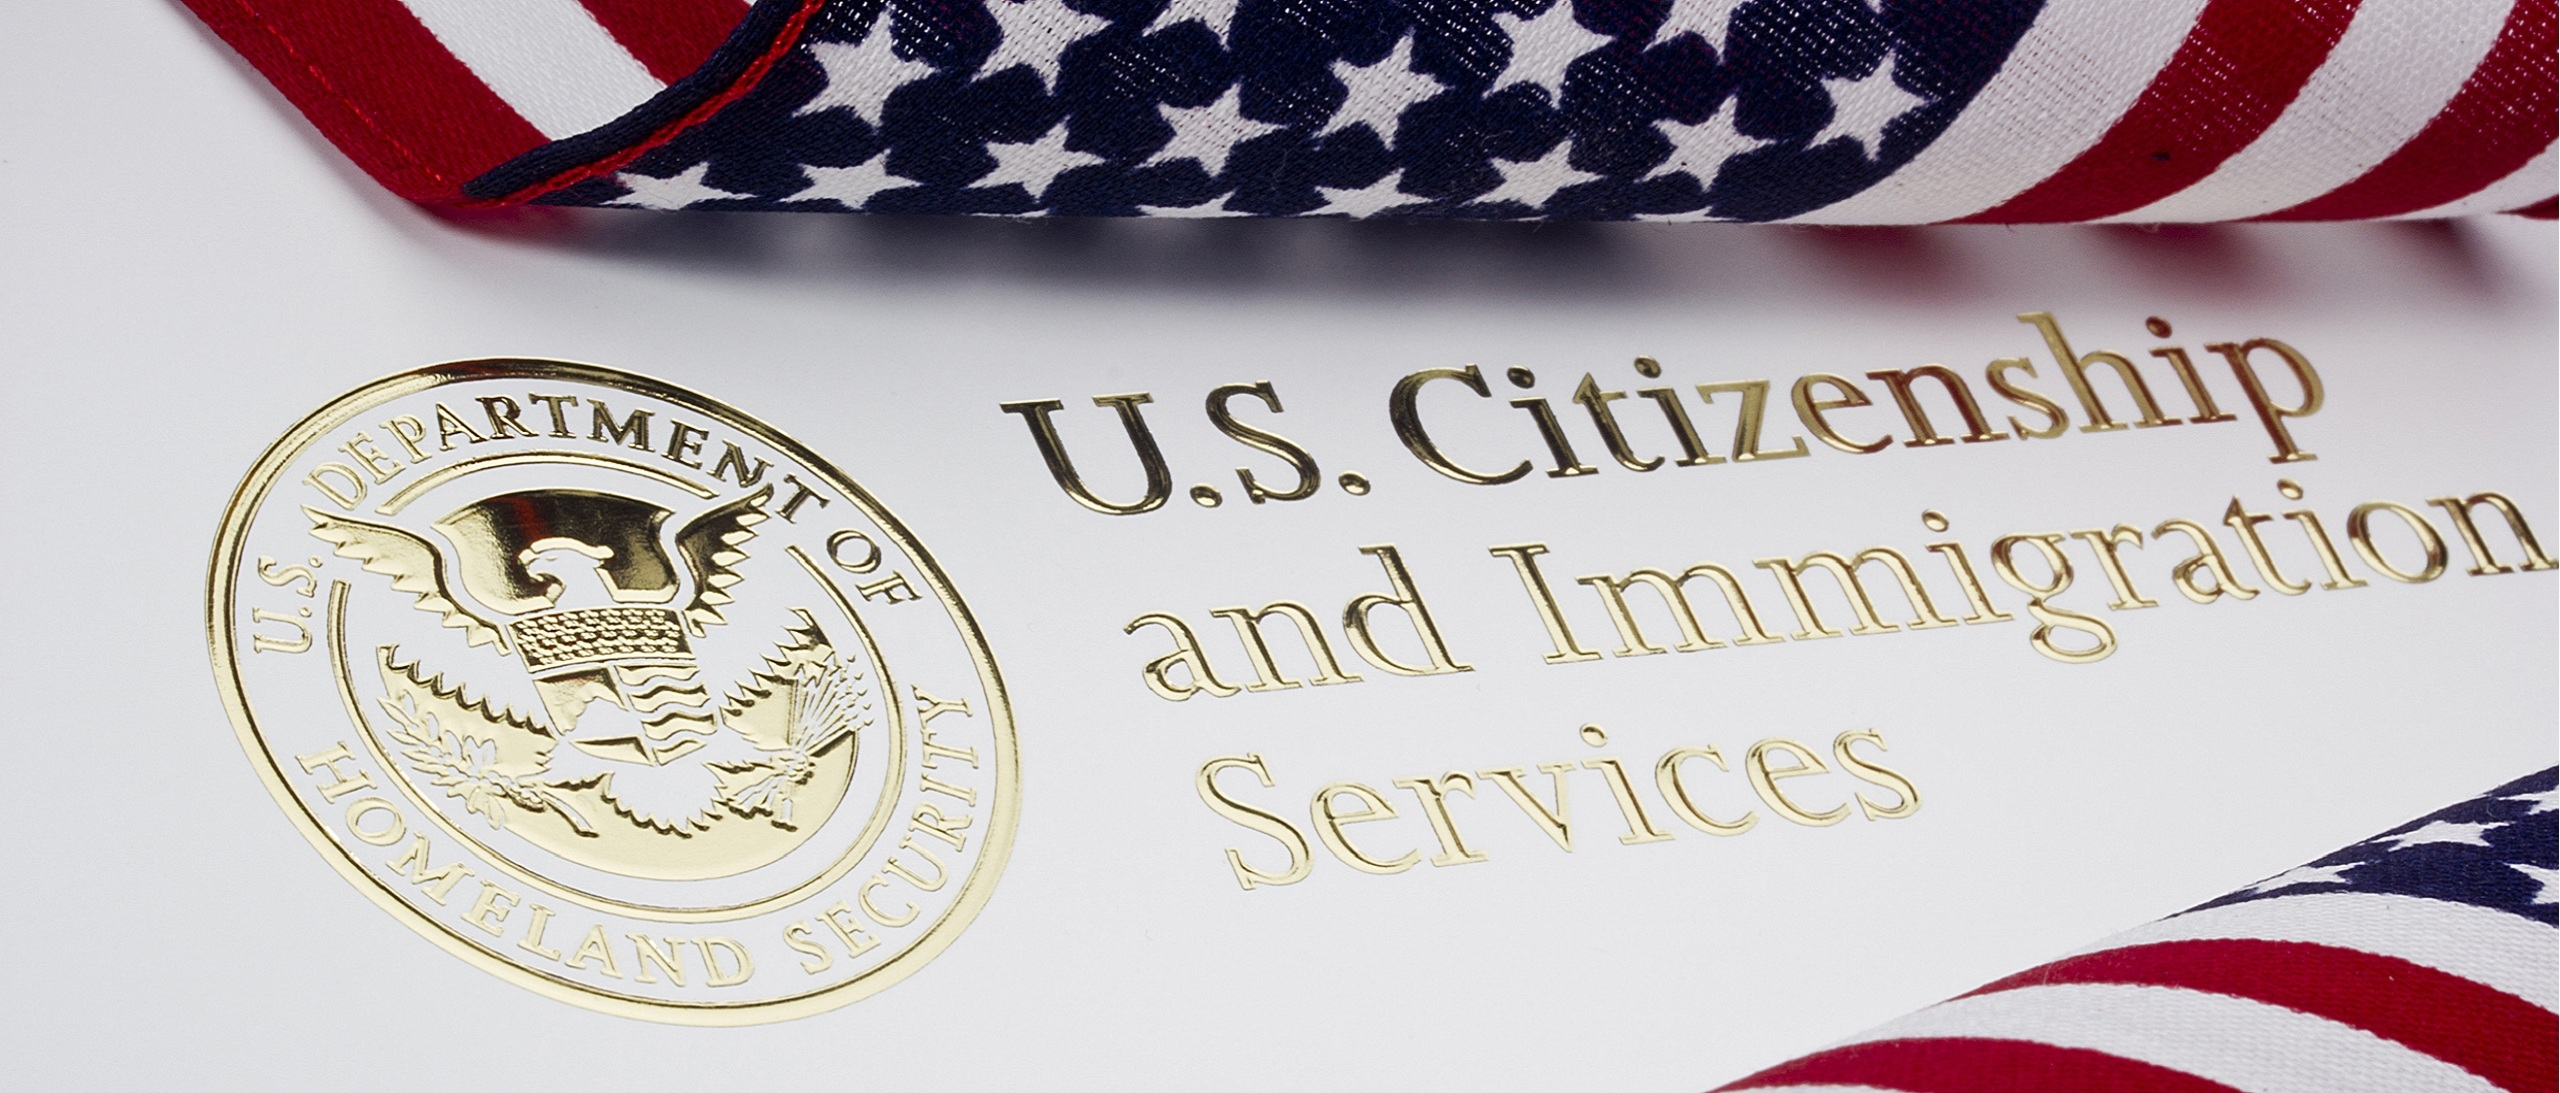 U.S. Immigration and Citizenship